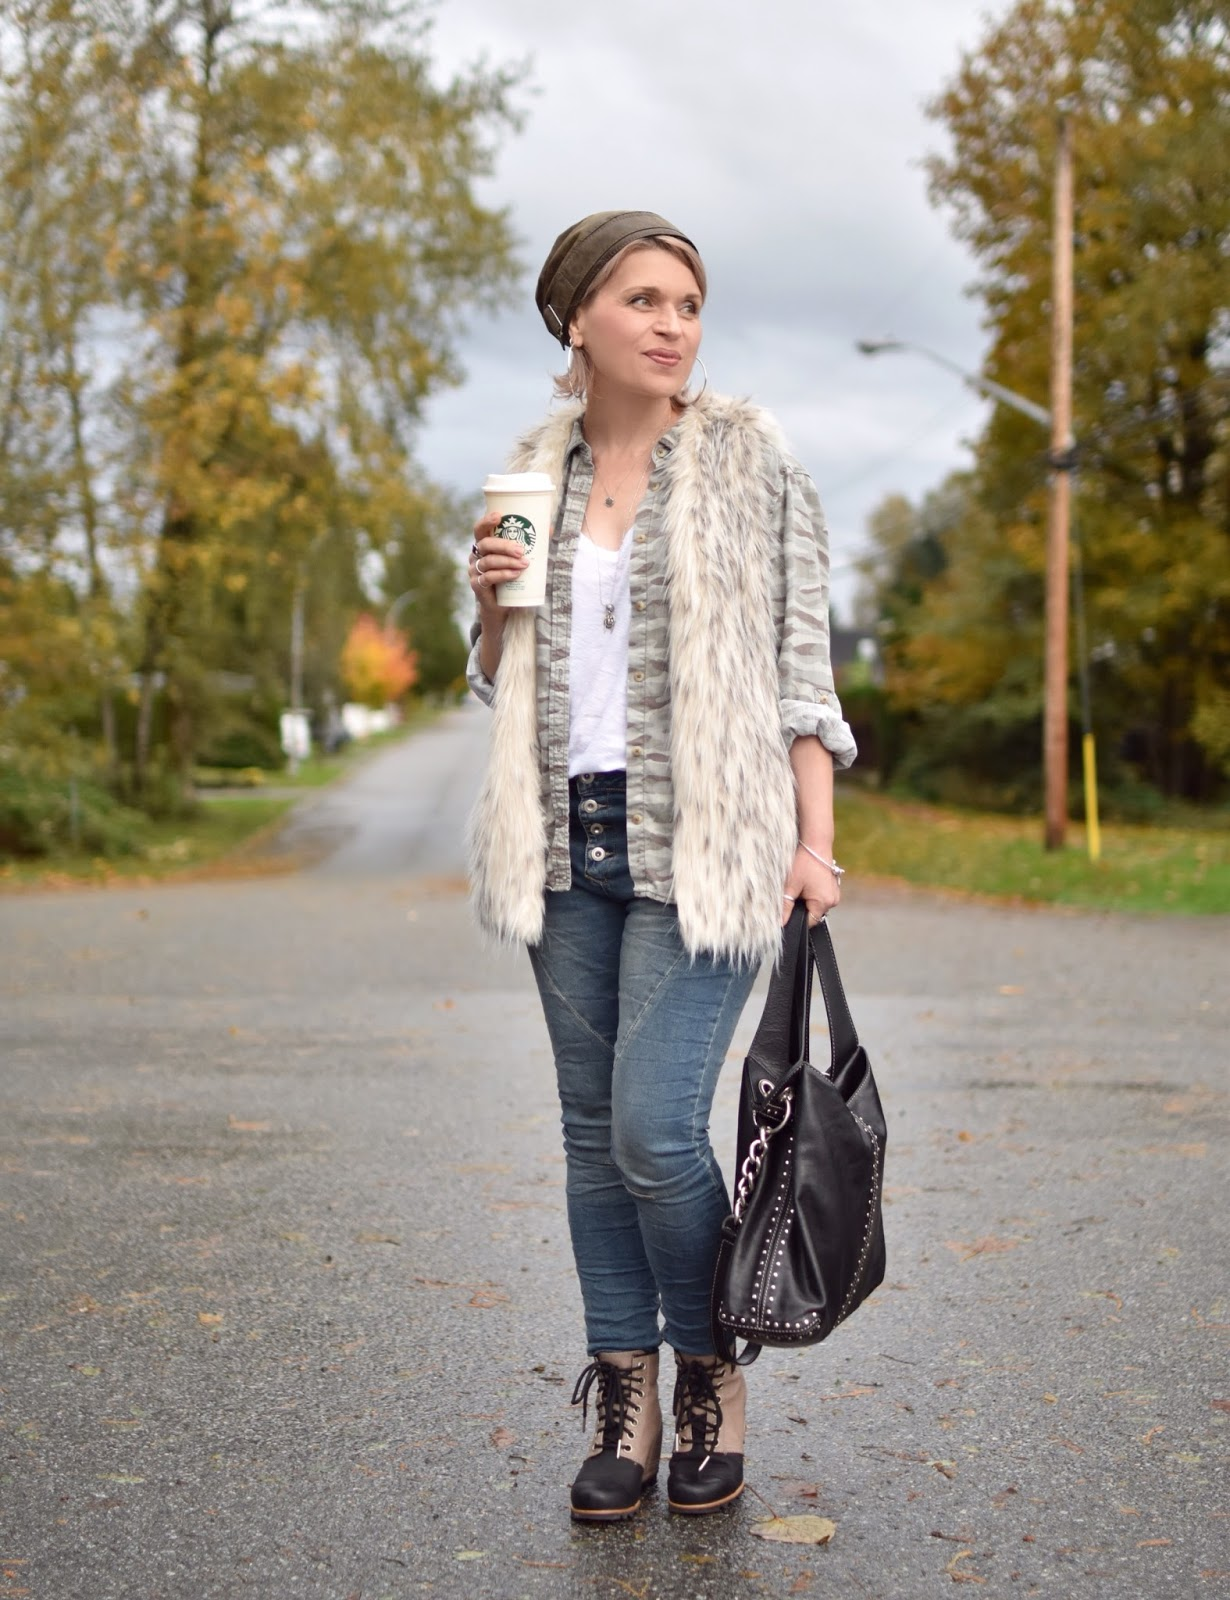 Outfit inspiration c/o Monika Faulkner - skinny jeans, camo shirt, faux-fur vest, Sorel booties, and leather beanie